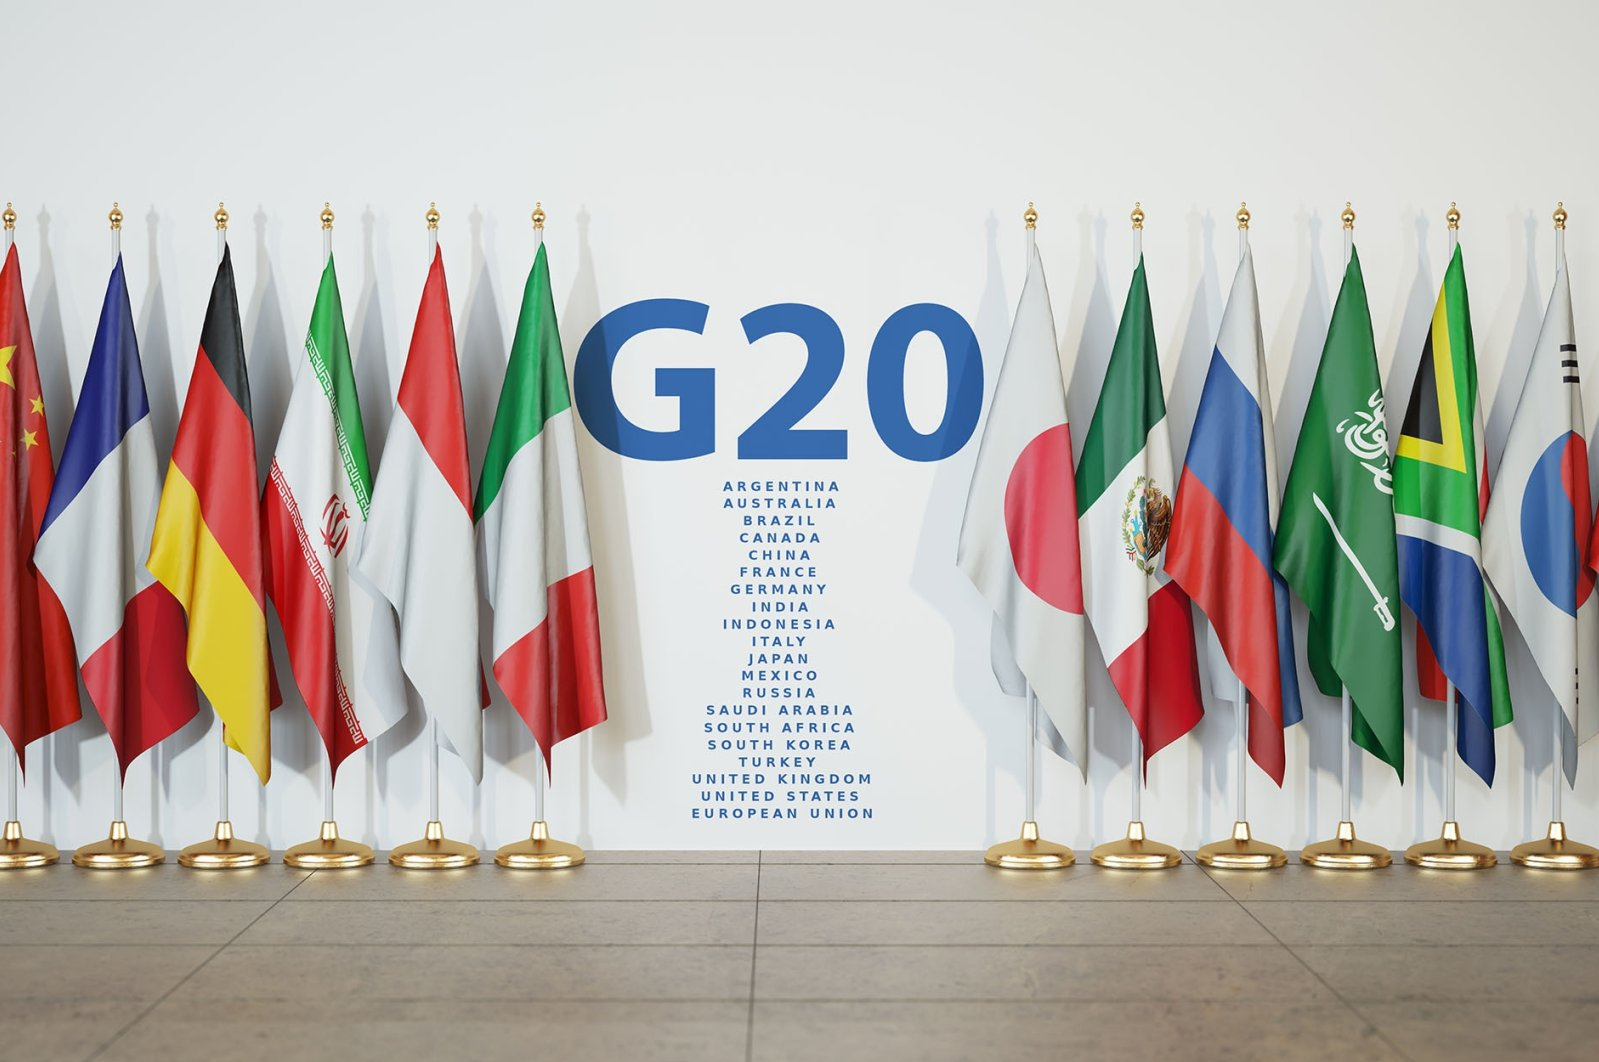 Flags of G-20 countries are seen during a meeting of the group. (Shutterstock Photo)